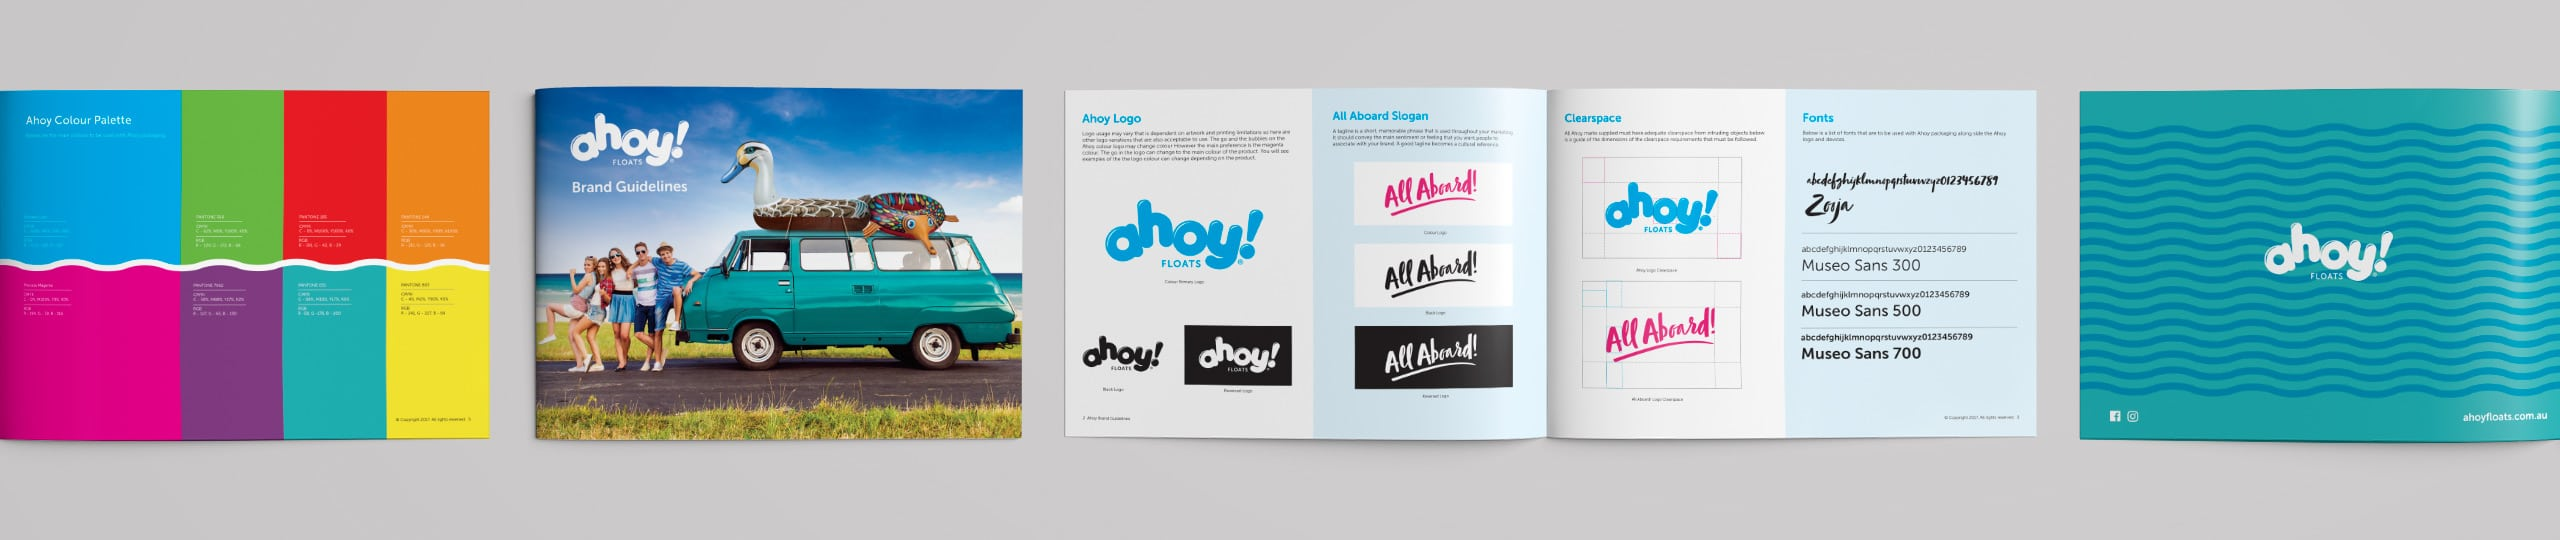 Ahoy Floats Brand Guidelines Brand Strategy Marketing Campaign Brand Design